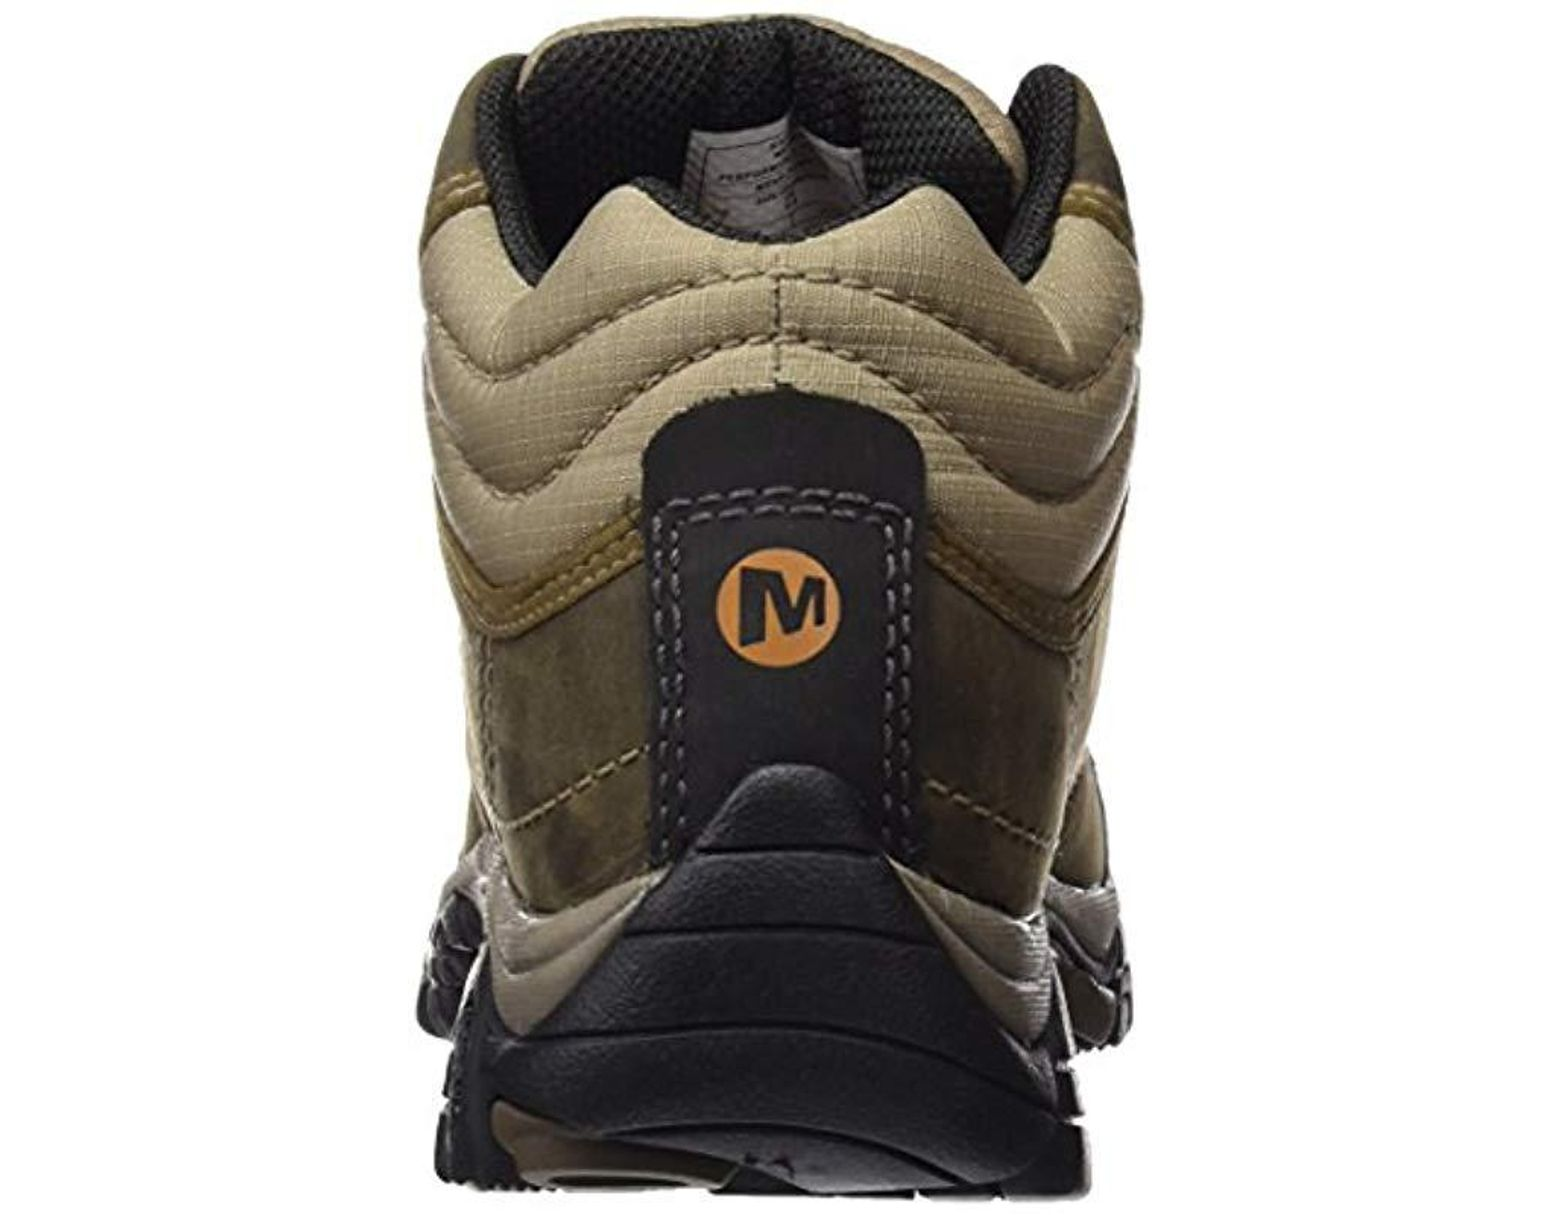 d7ec3caa18465 Merrell Moab Rover Mid Waterproof High Rise Hiking Boots in Brown for Men -  Lyst